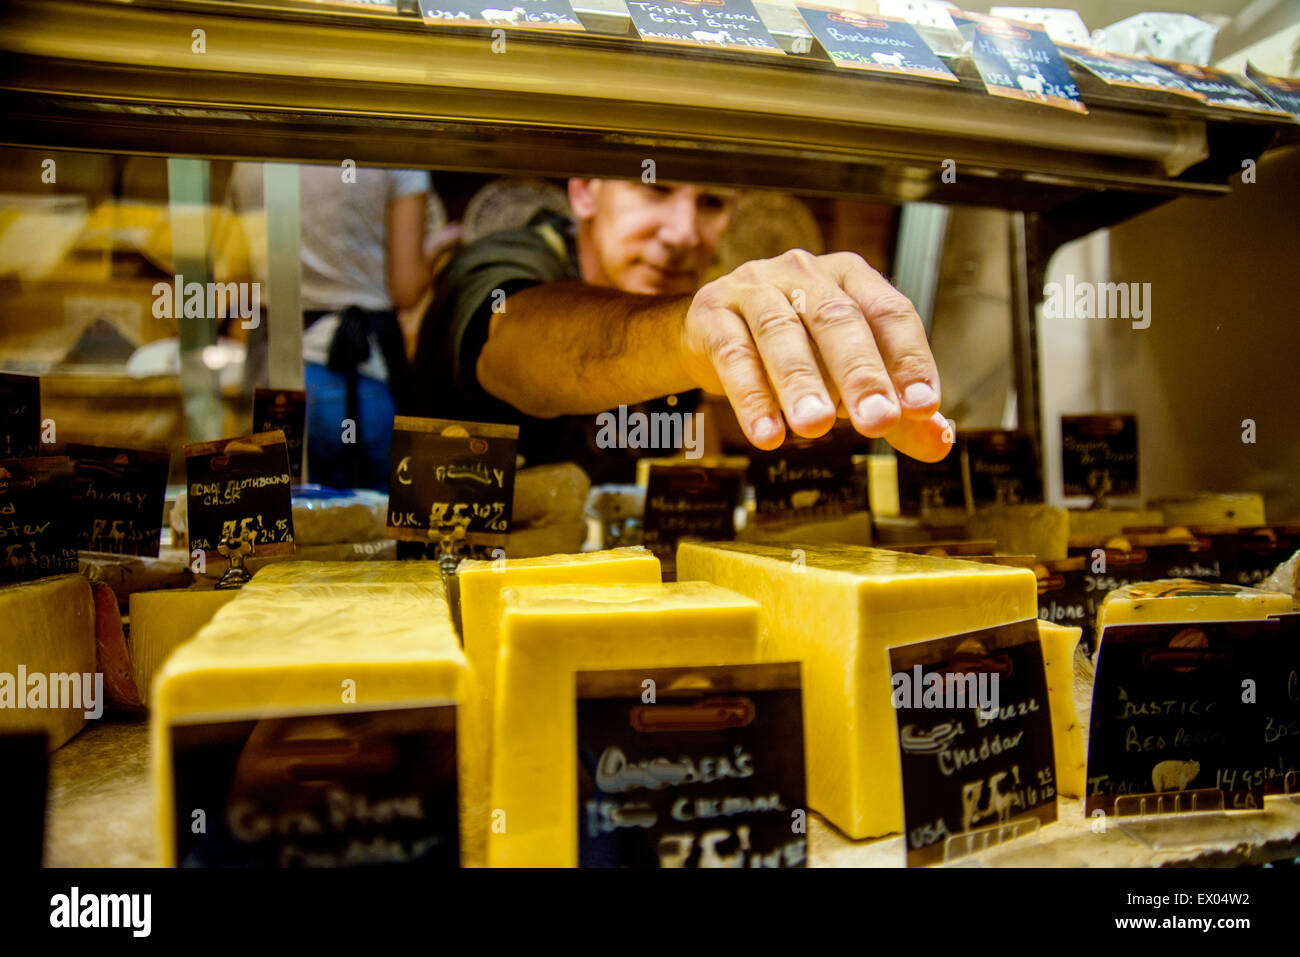 Cheesemonger reaching for cheese in display - Stock Image